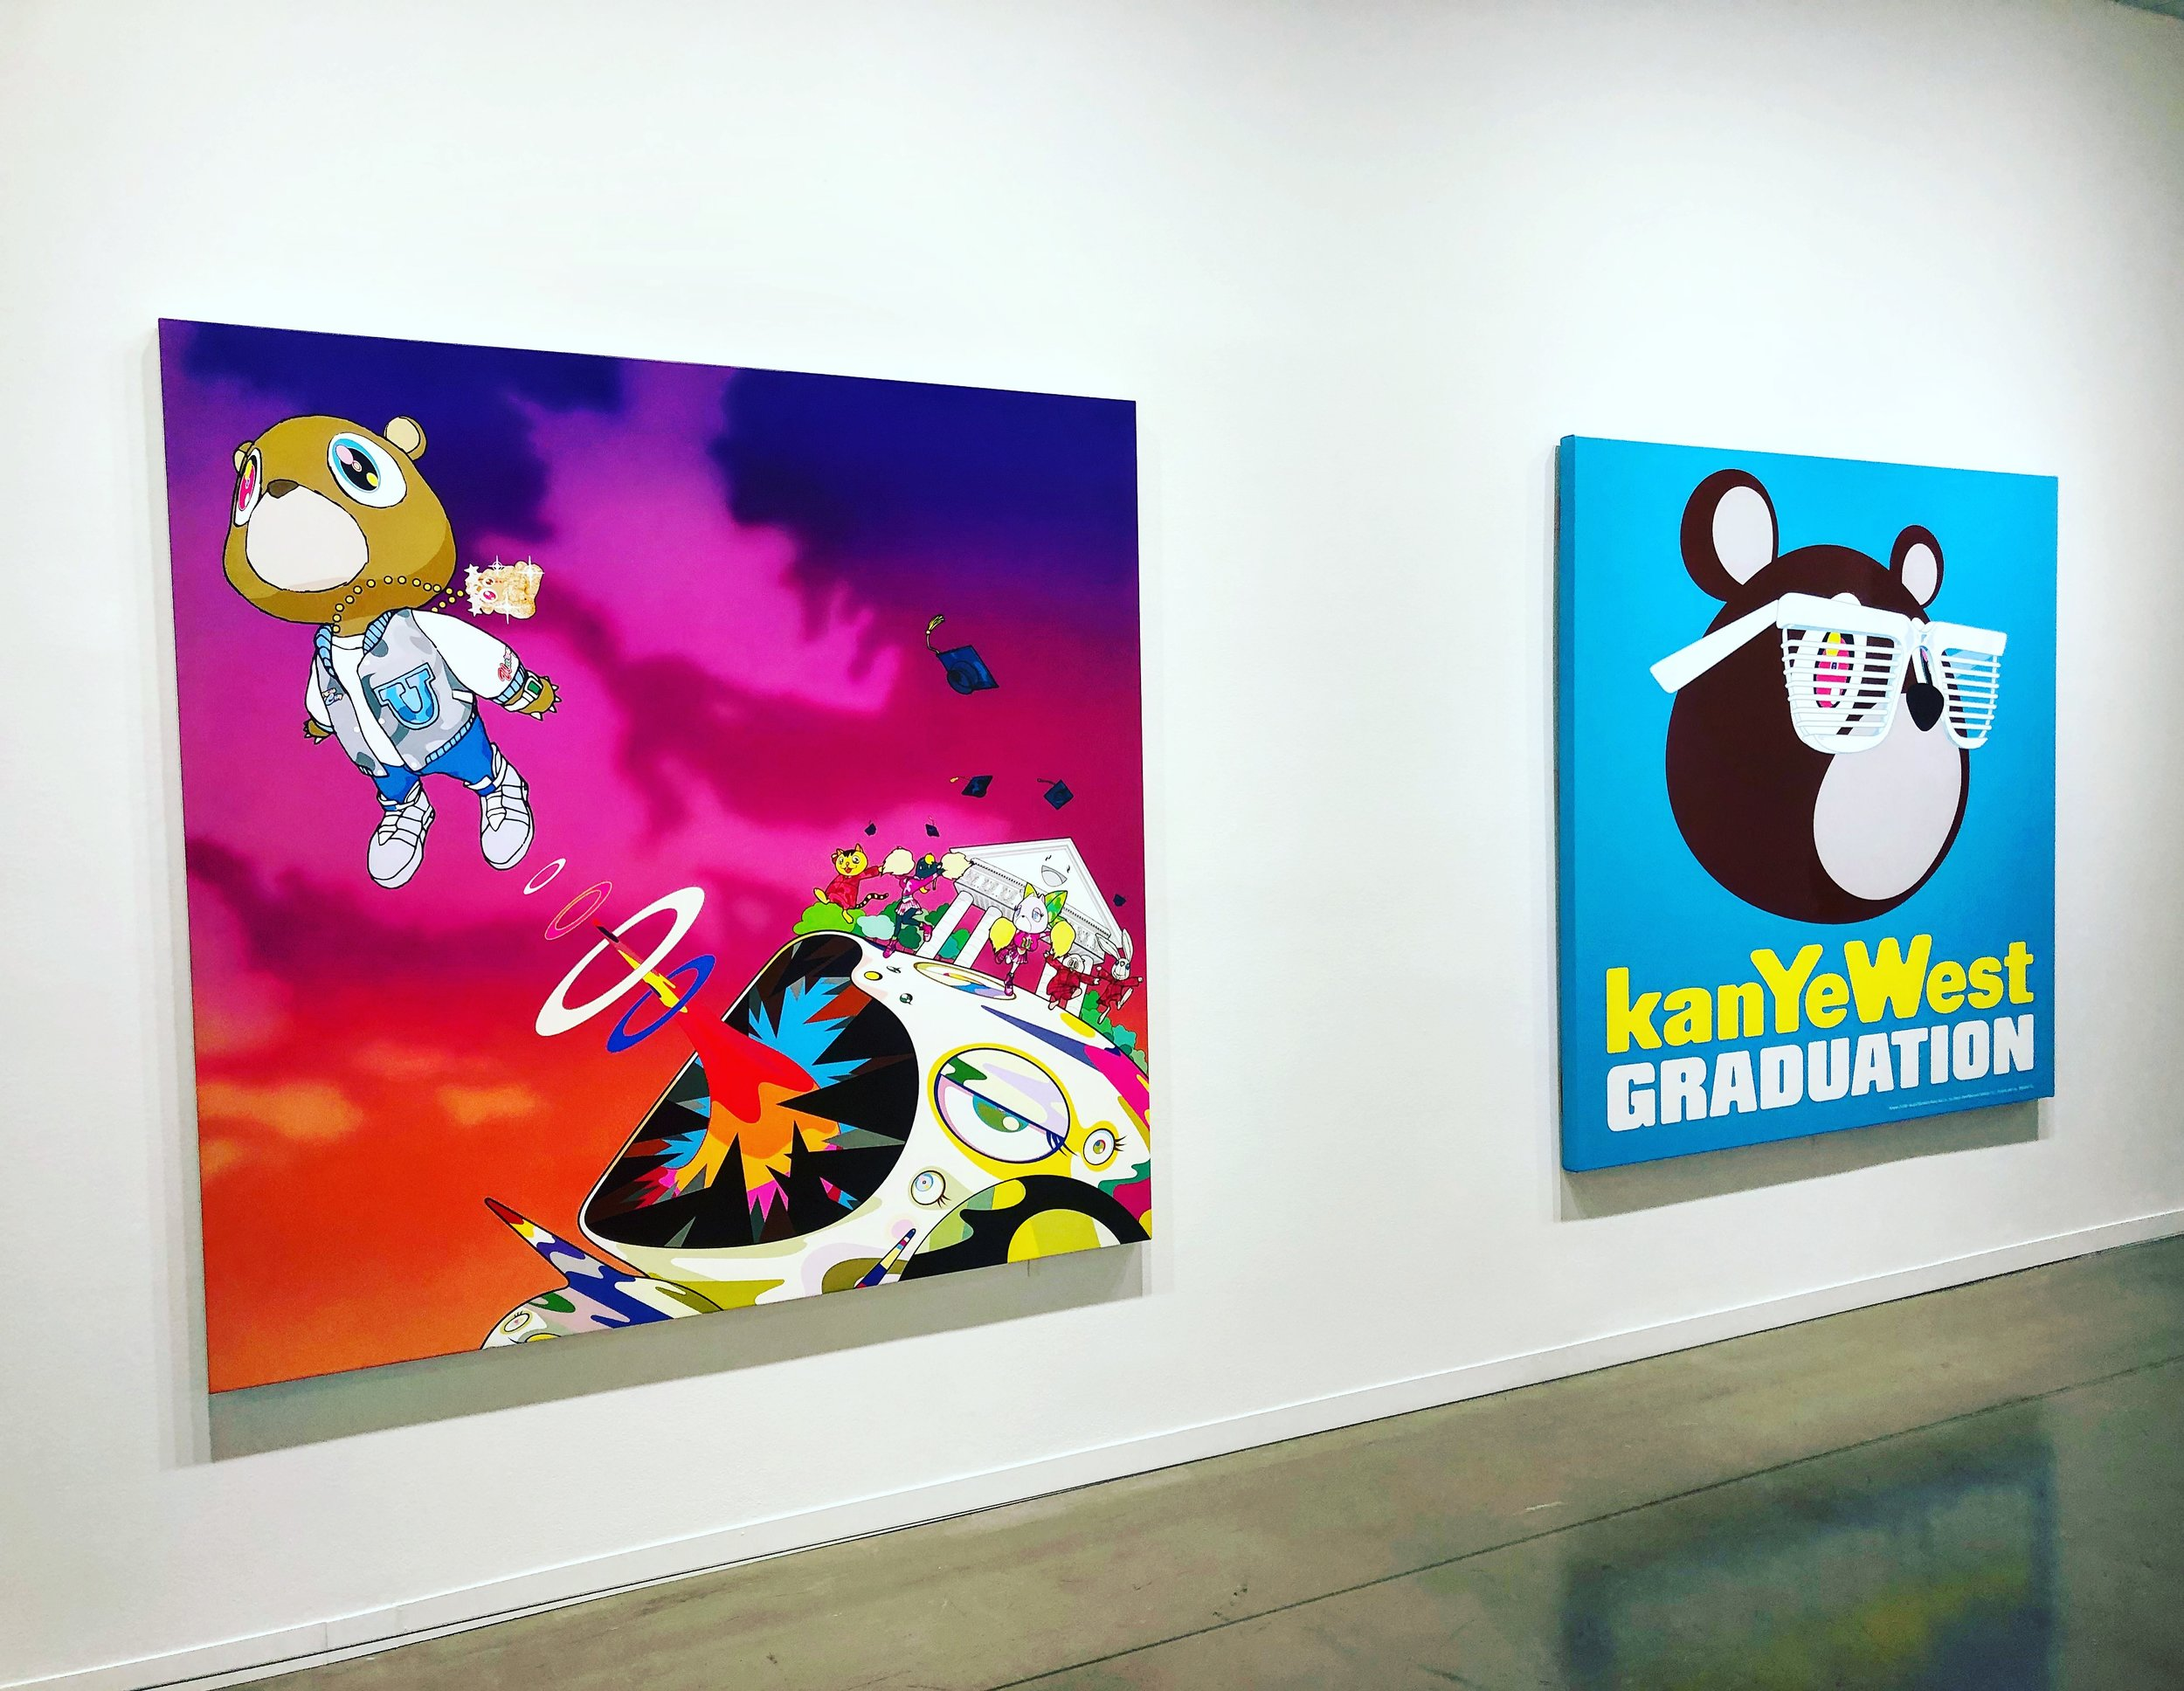 Not surprisingly, the interest and attention in Murakami intensified over a decade ago when he collaborated with Kanye West on his Graduation album cover, and then later with fashion house Louis Vuitton. Murakami's celebrity artist status, however, has overshadowed many aspects of his career that often go unmentioned or underappreciated. This retrospective did an excellent job balancing the multi-dimensional aspects of Murakami's art career, spanning several decades across the globe.